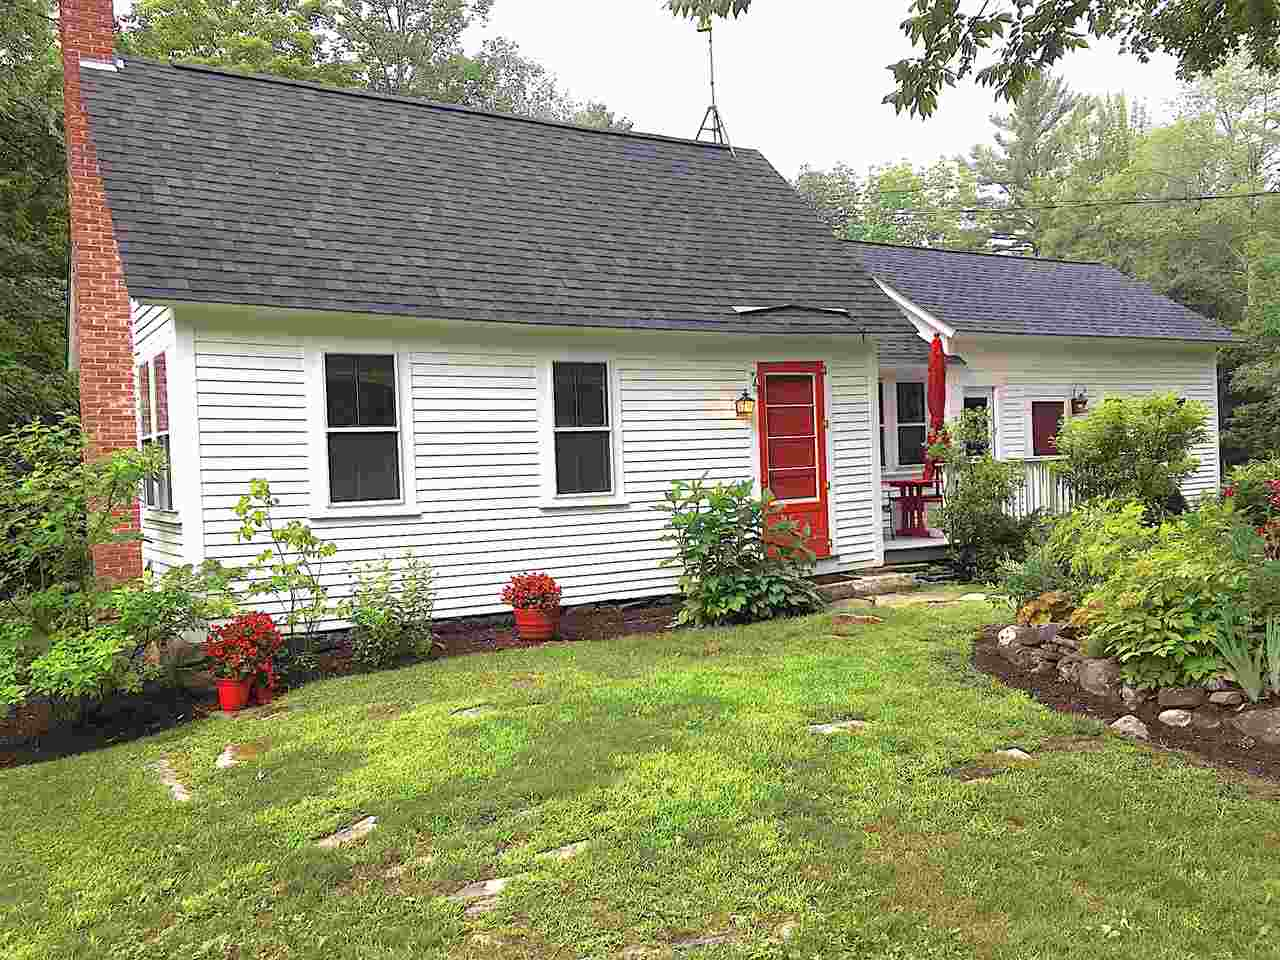 MLS 4770212: 461 Indian Pond Road, Orford NH